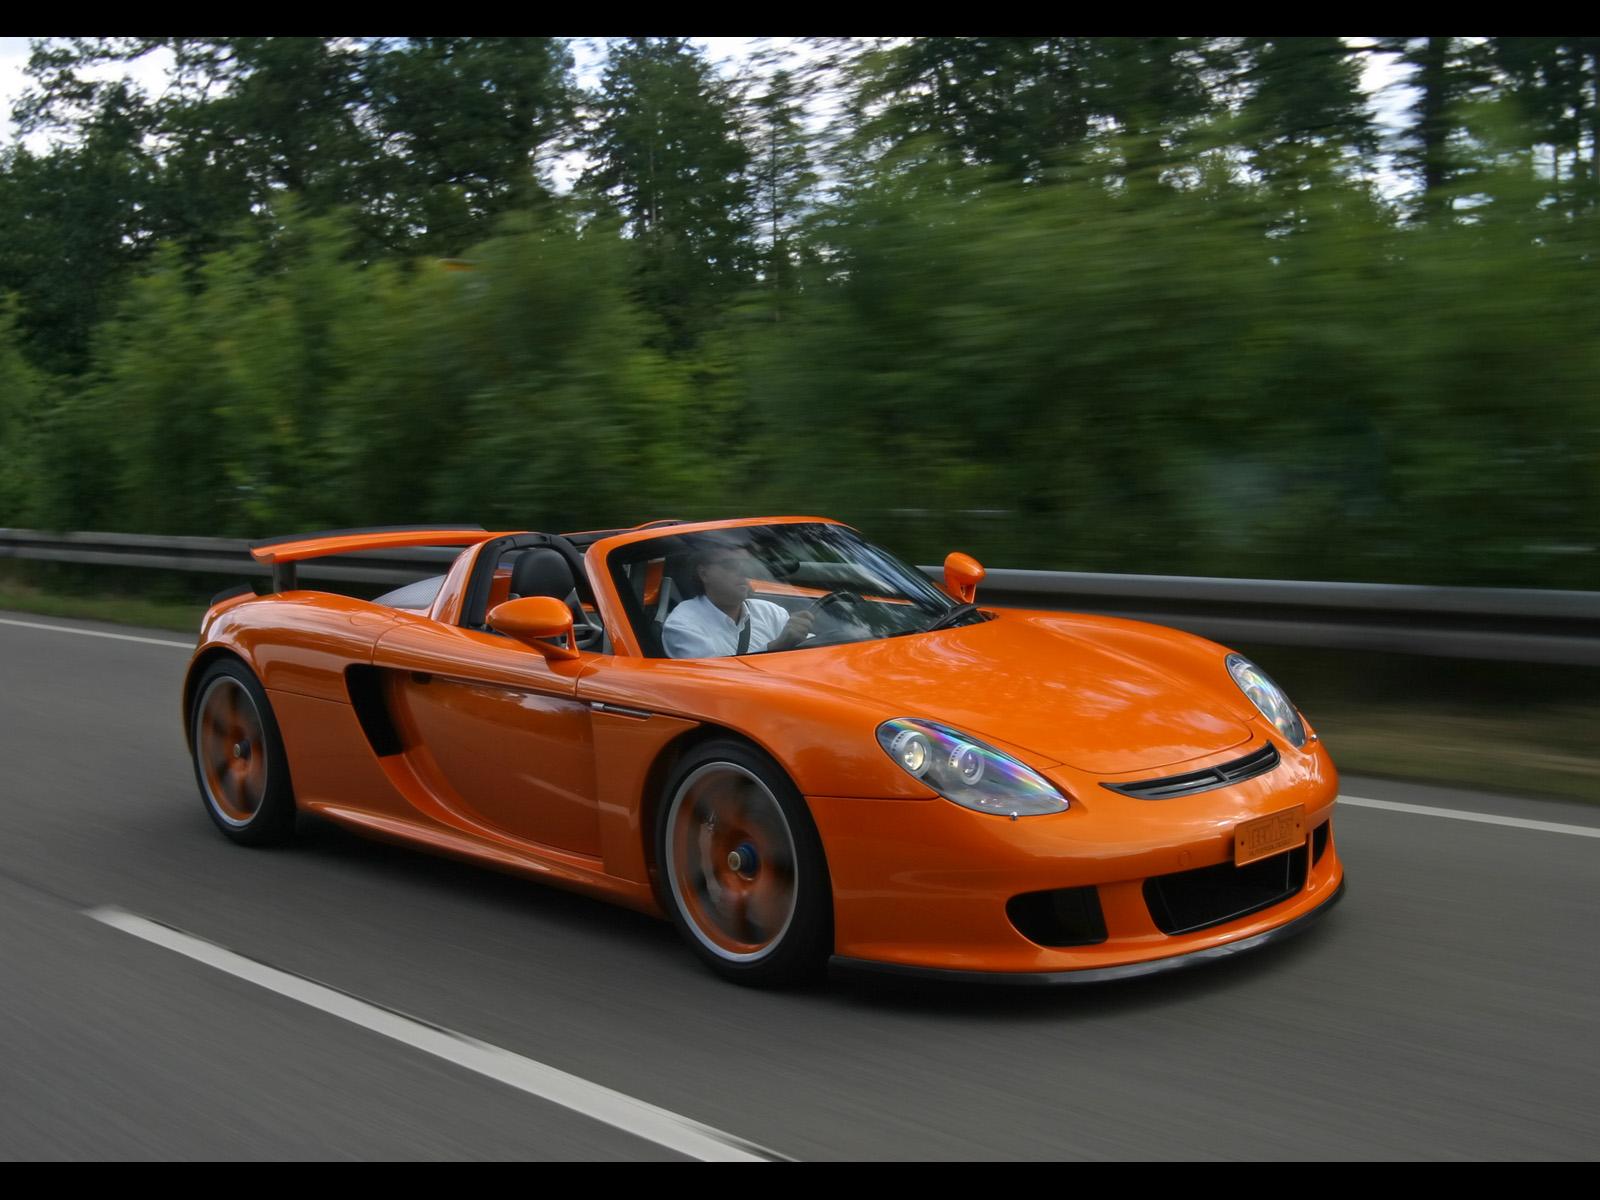 Techart Porsche Carrera GT photo 37820